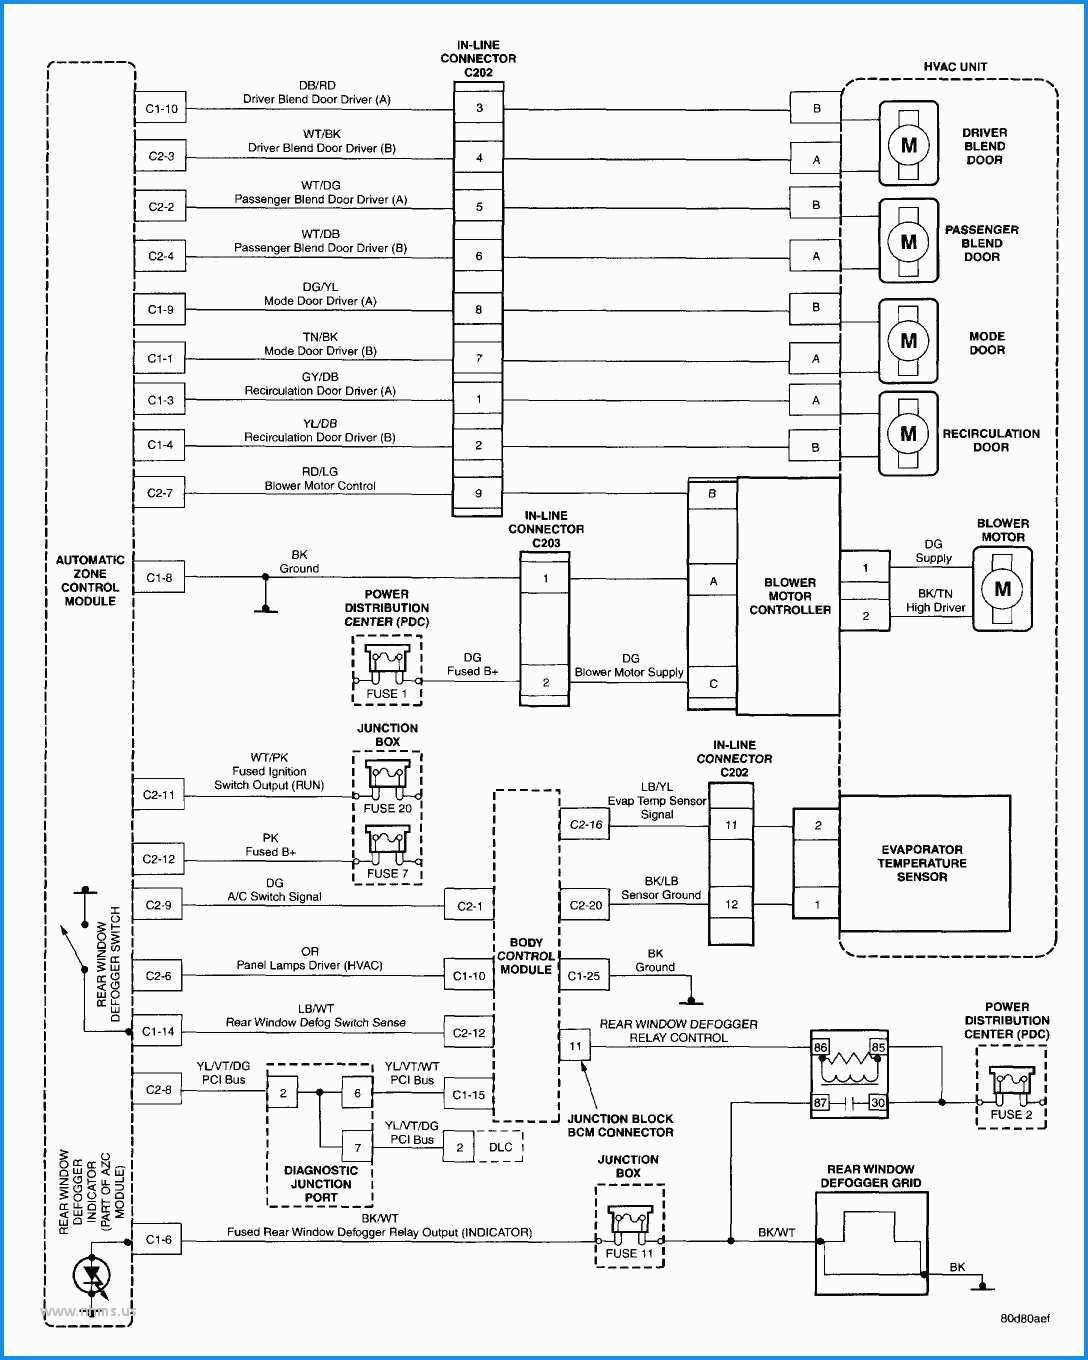 Jeep Liberty Wiring Harness Diagram   Wiring Diagram - 2006 Jeep Liberty Trailer Wiring Diagram